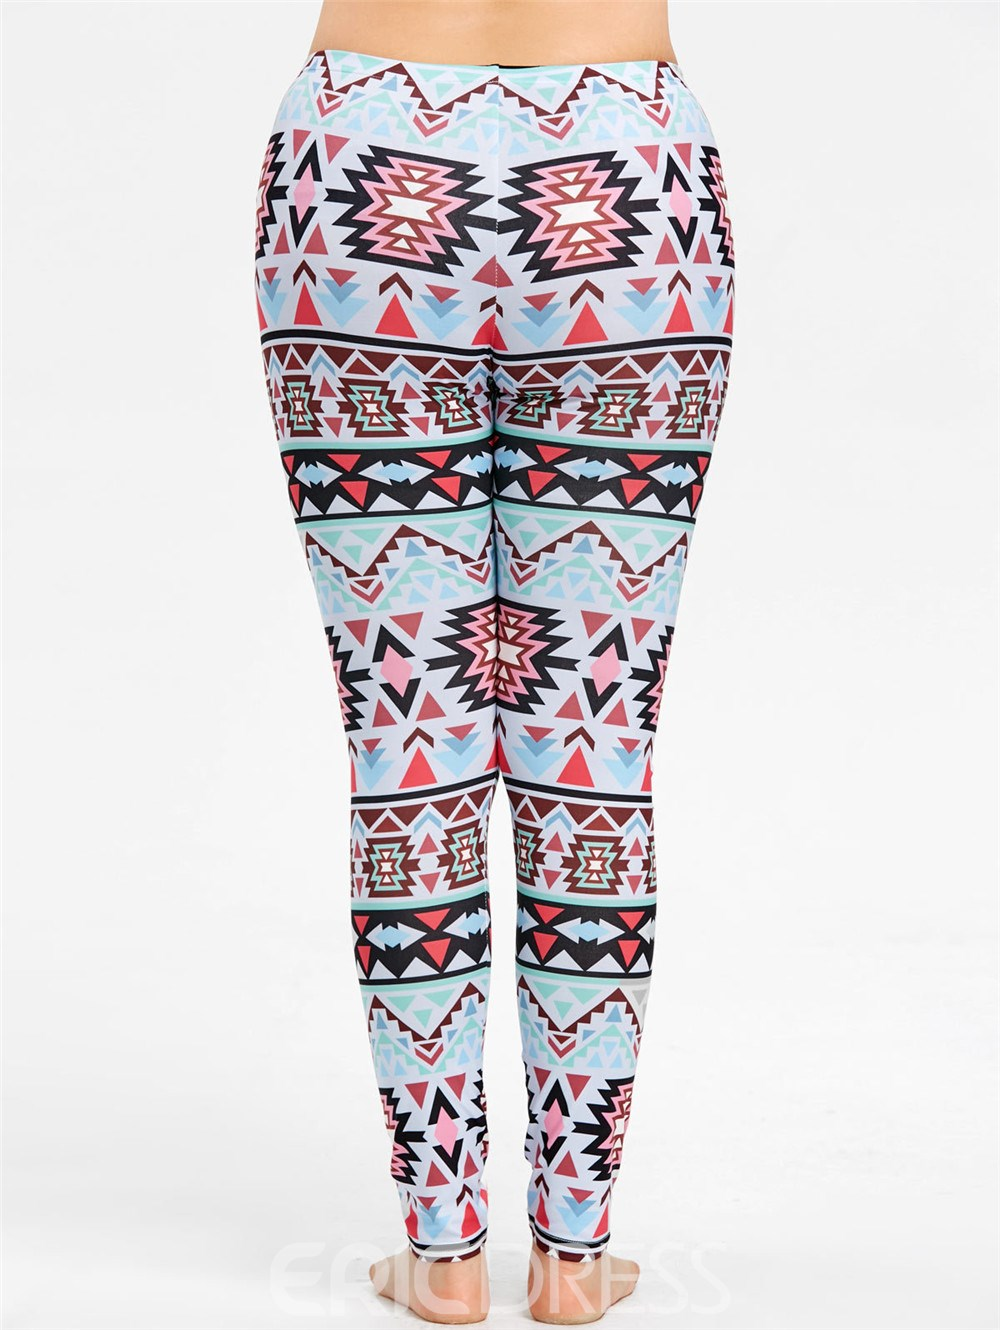 Leggings de talle alto con estampado informal en color block